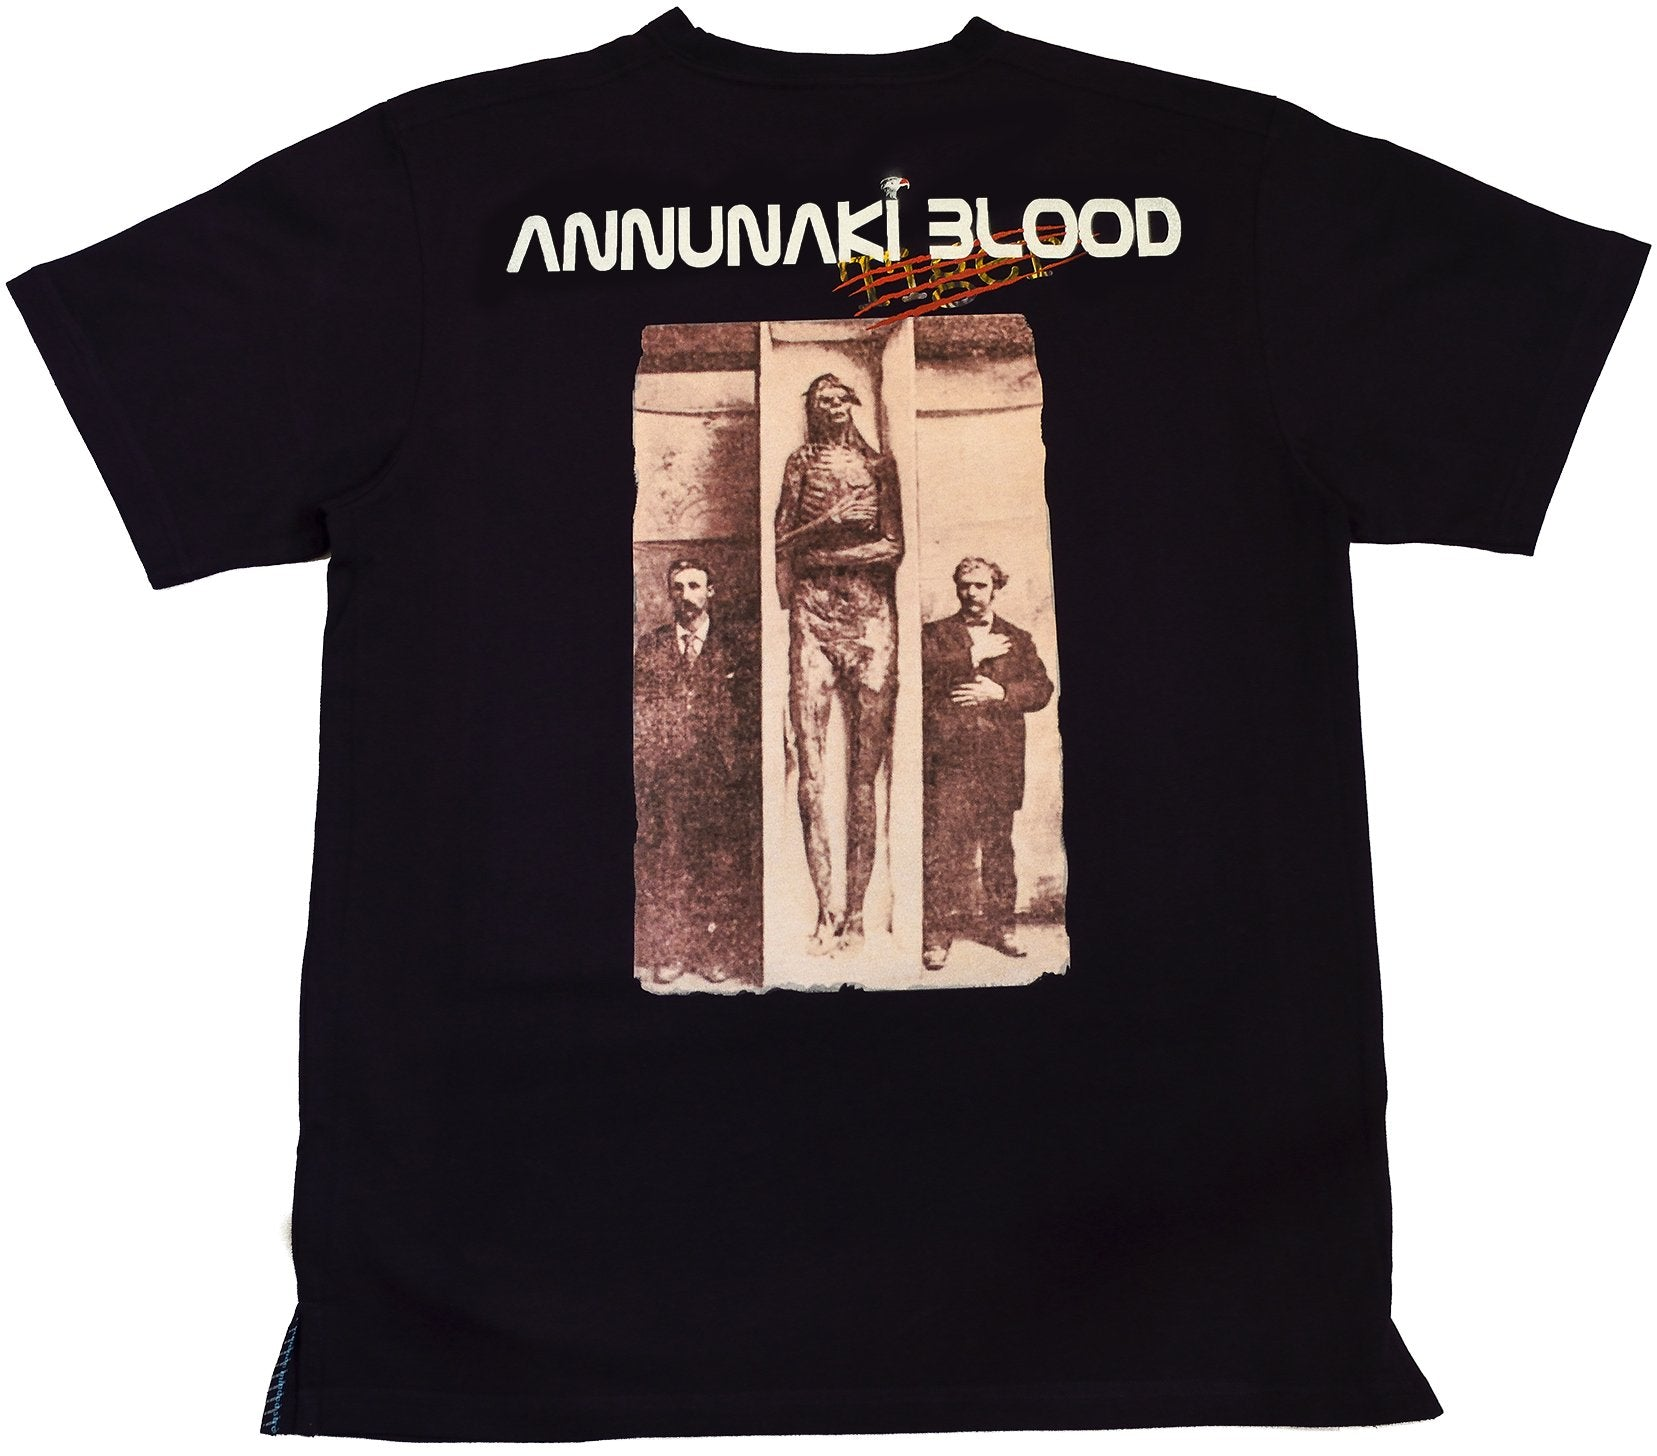 DarqMatterDesign CutnSew T-Shirts Small / Black Annunaki Blood